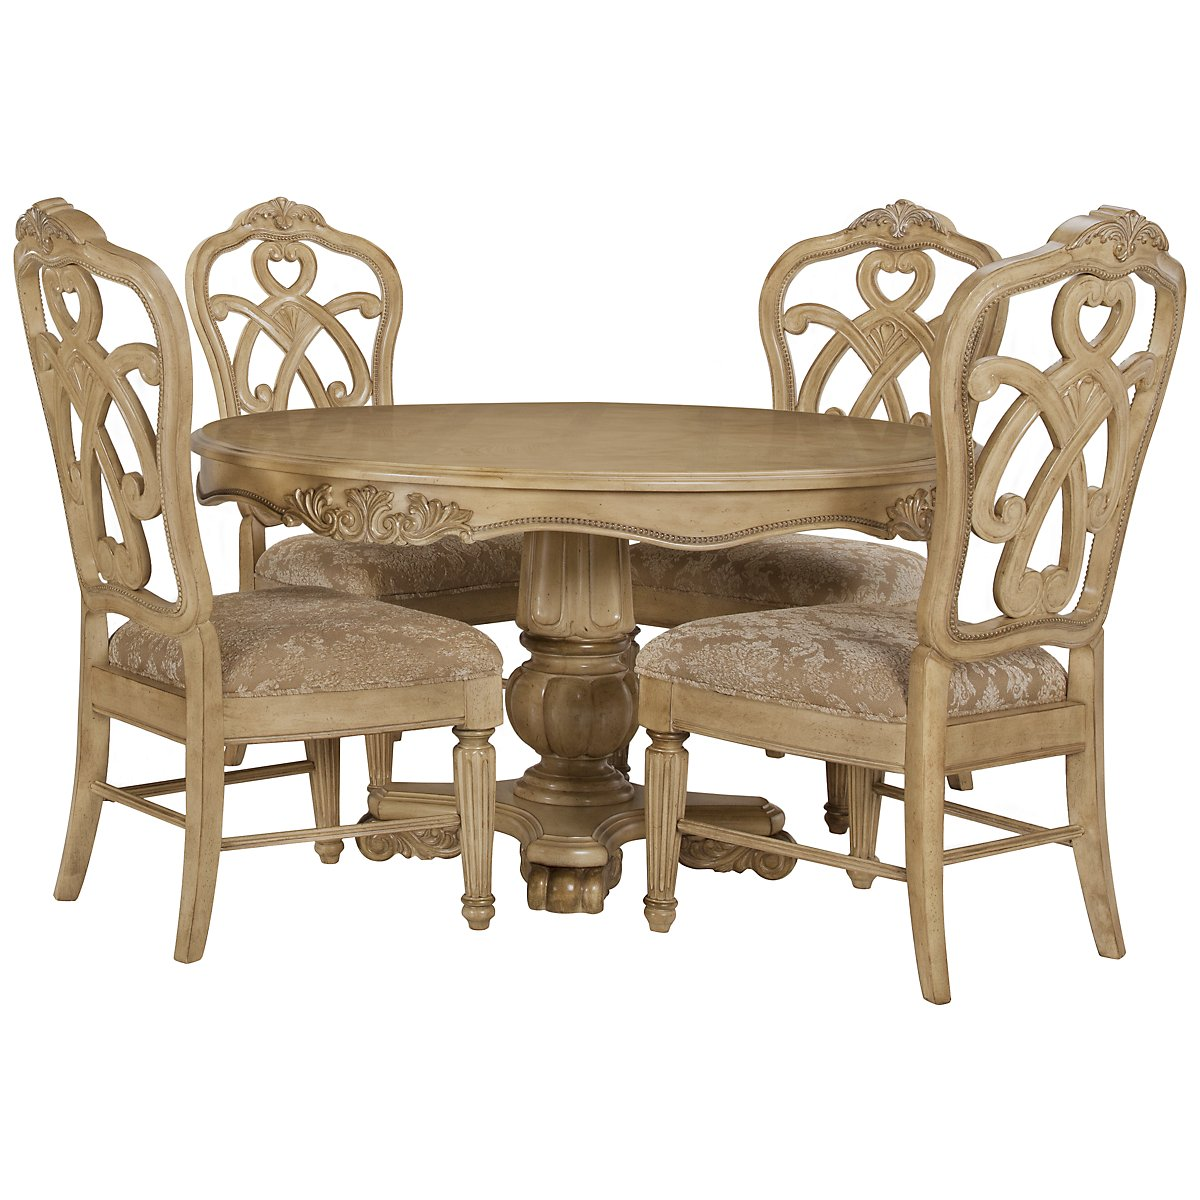 Regal Light Tone Round Table & 4 Wood Chairs